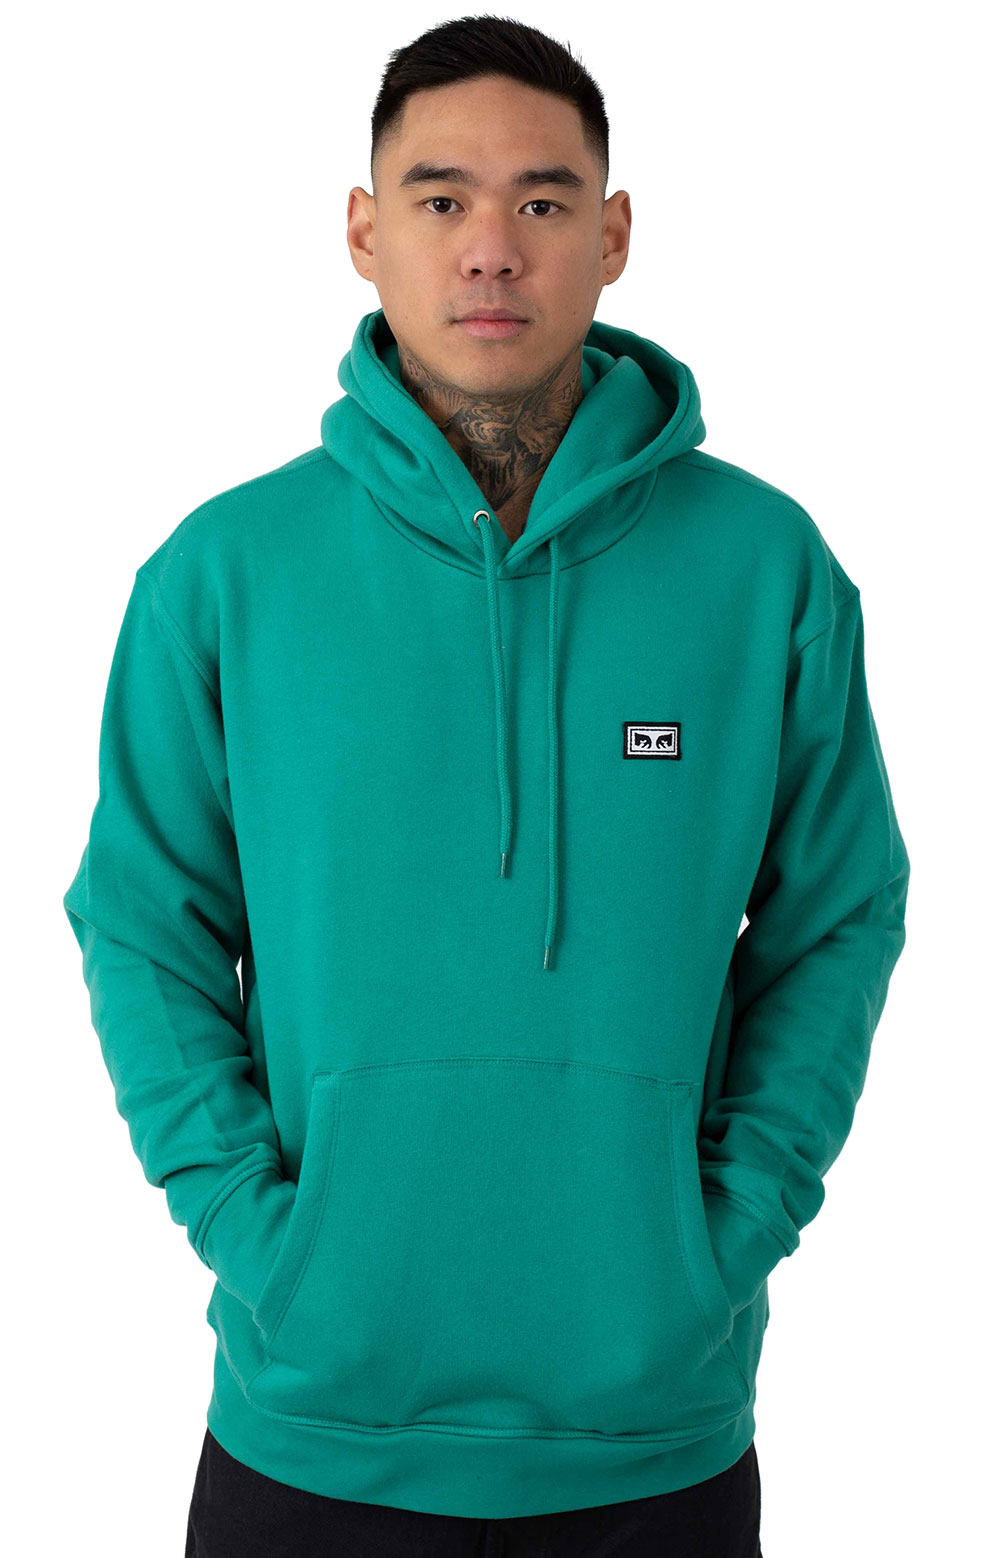 All Eyes Pullover Hoodie - Blue Green